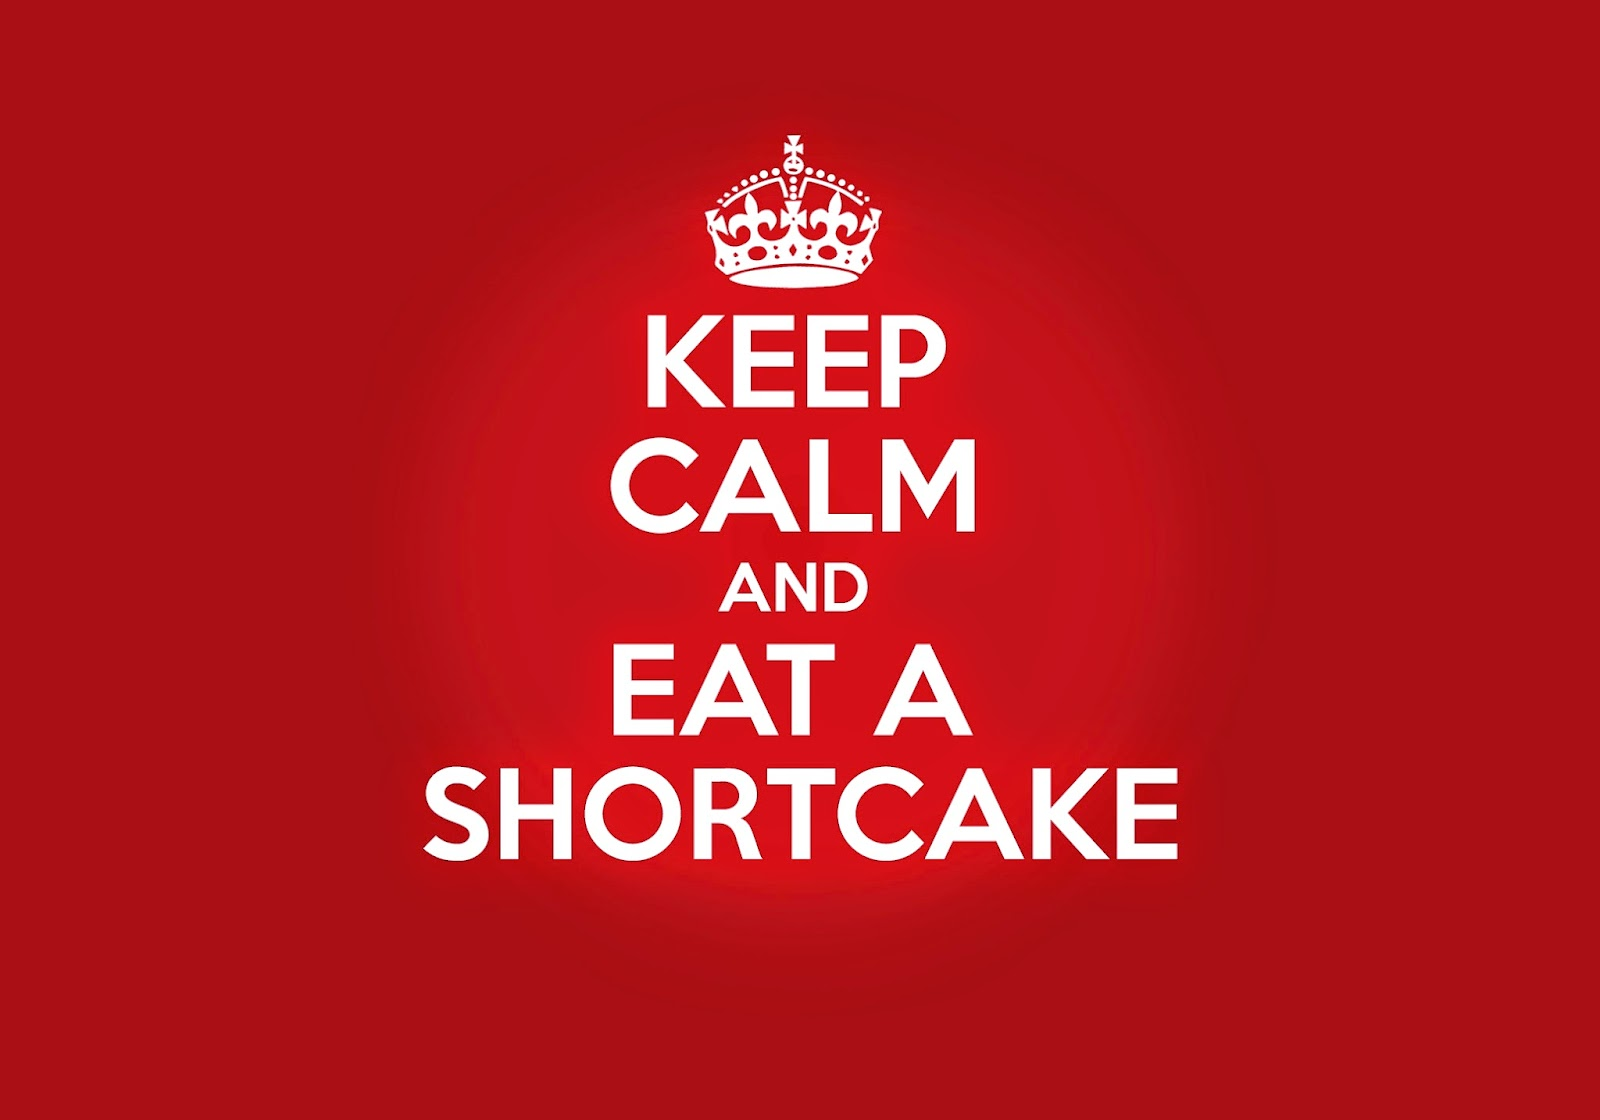 keep-calm-and-eat-a-shortcake